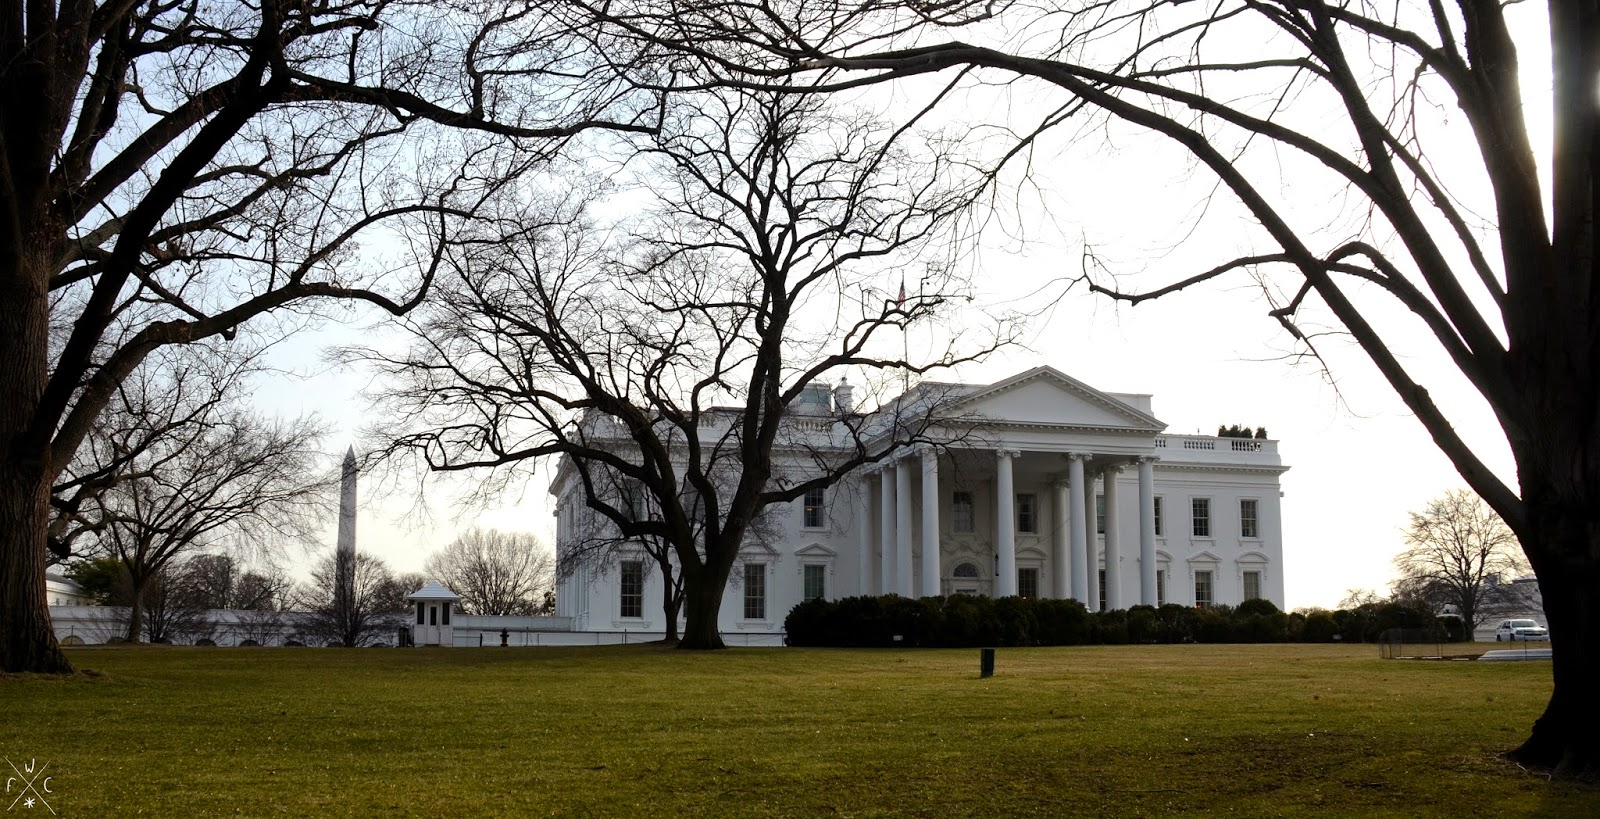 The White House - La Maison Blanche, Washington DC, USA